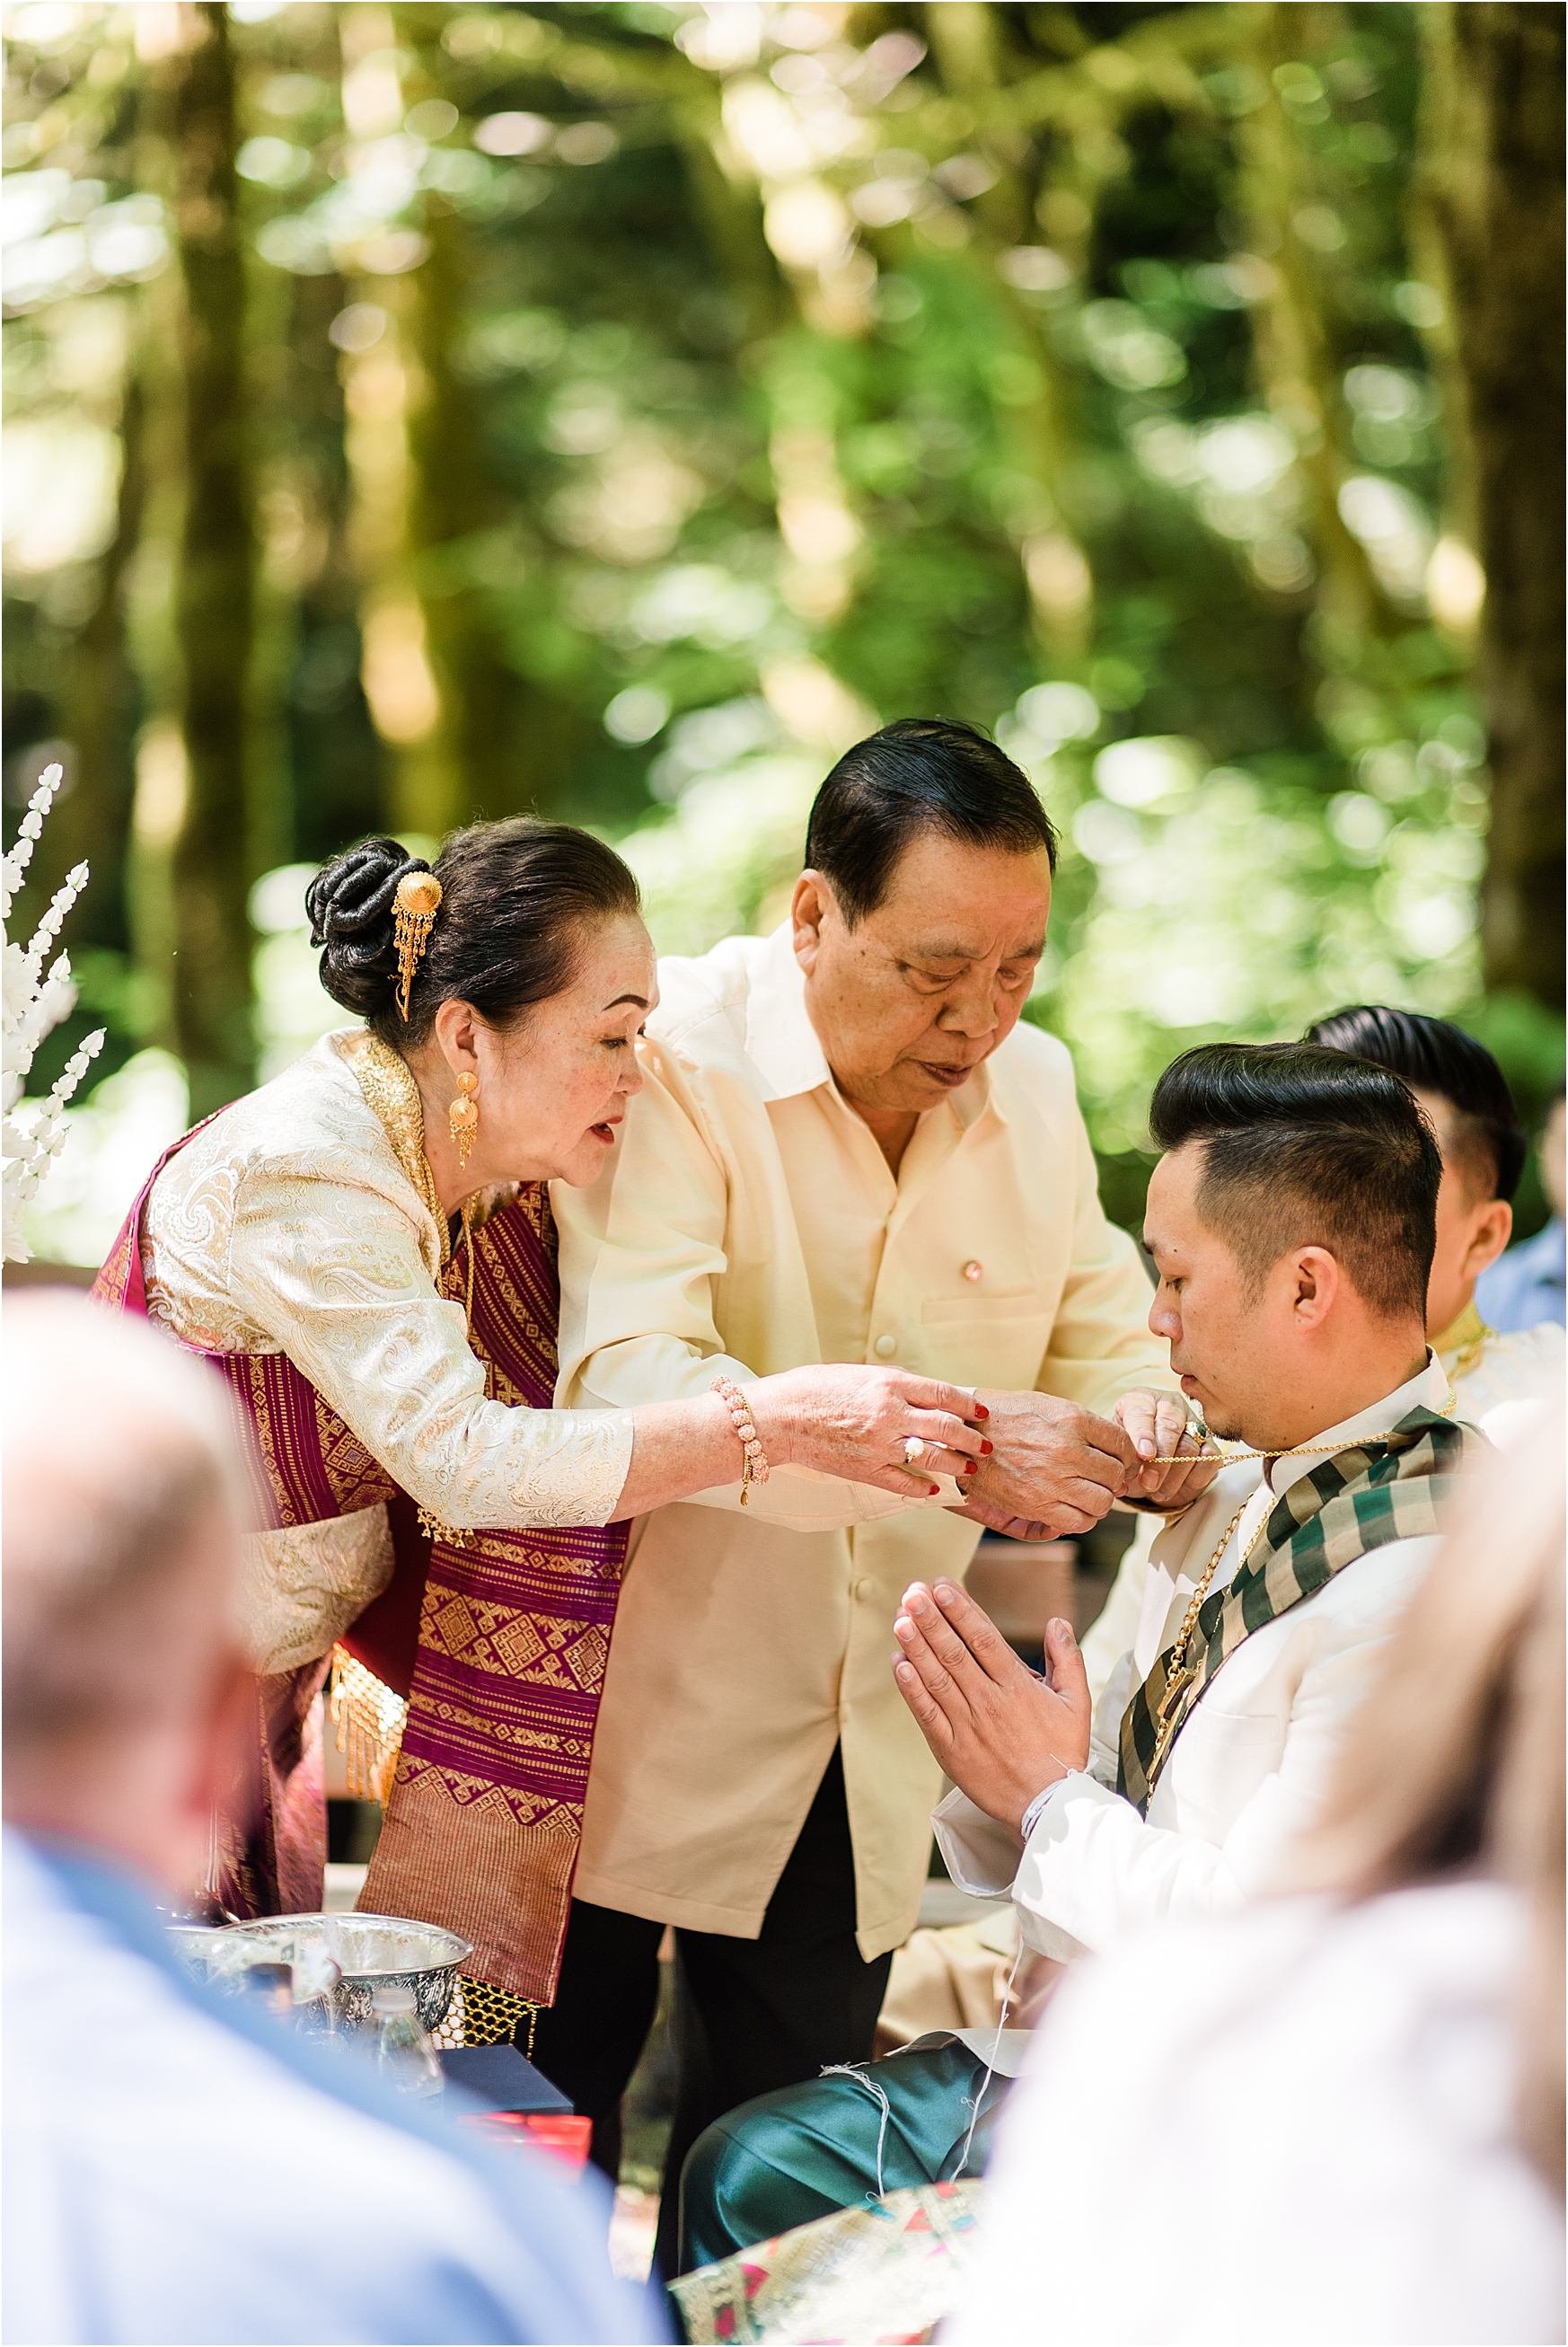 Traditional Laos wedding ceremony at Camp Lane, Oregon. Image by Forthright Photo, Seattle Wedding & Elopement Photographers.